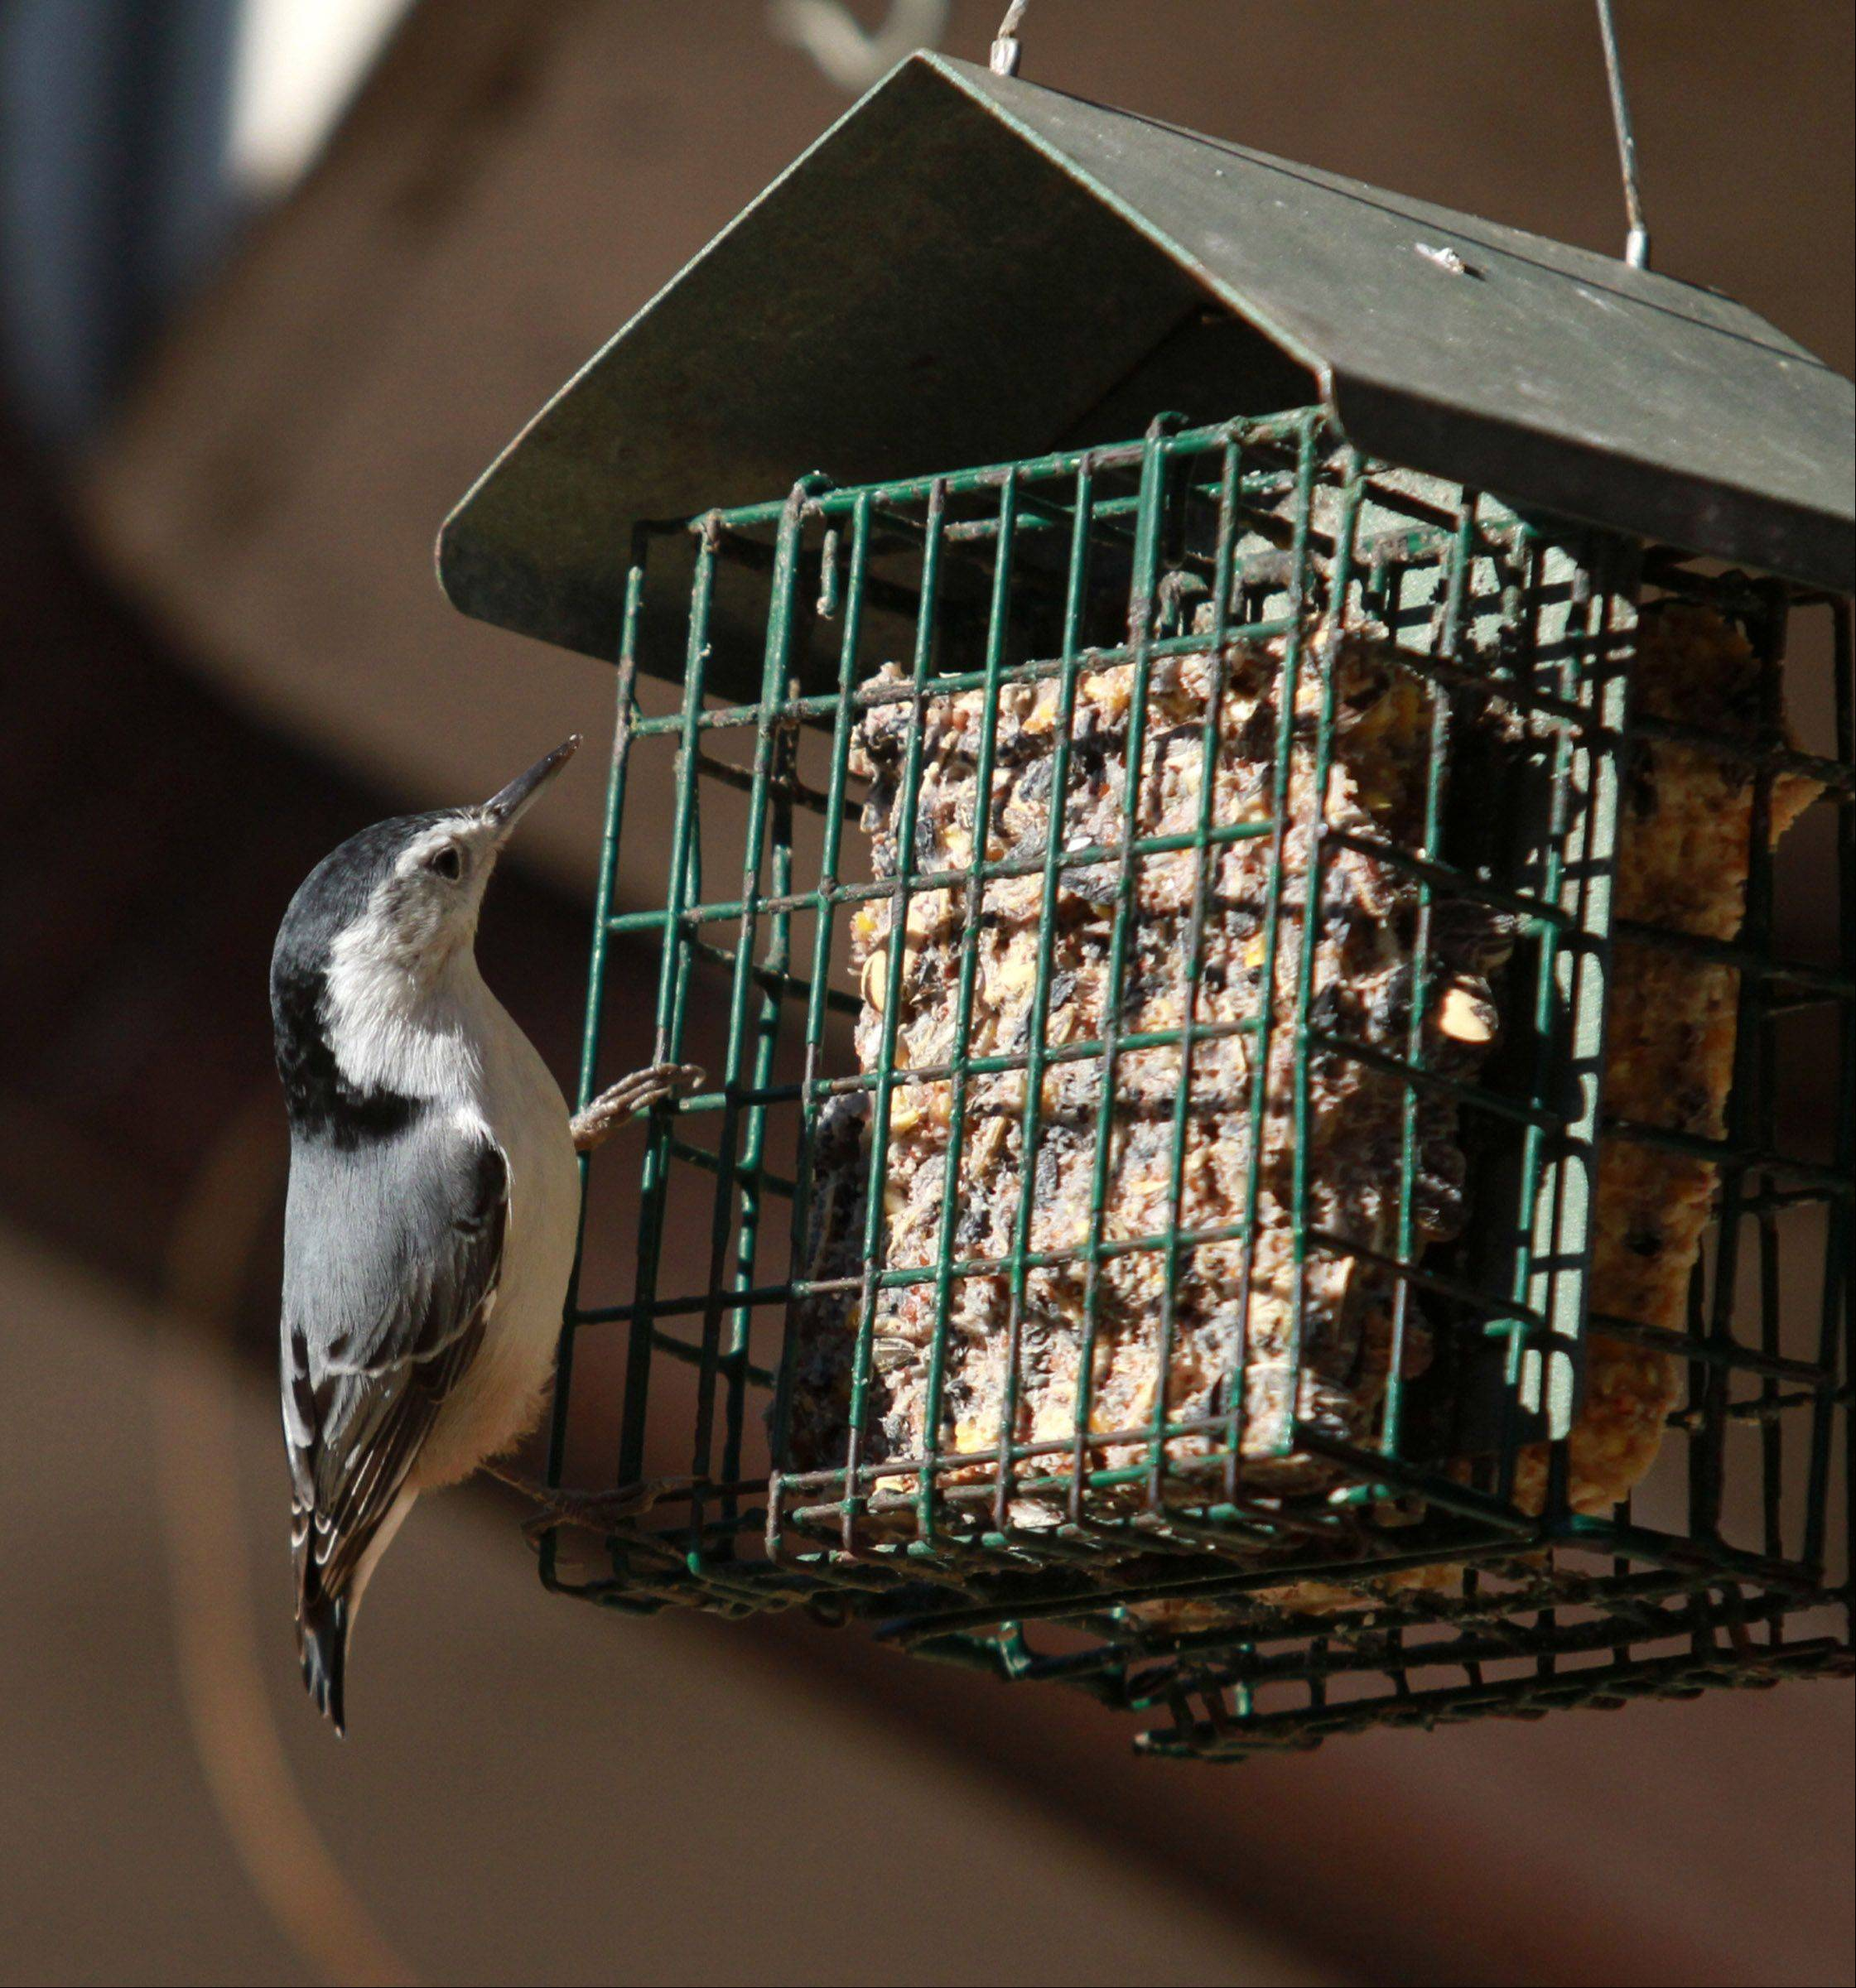 A male white-breasted nuthatch almost six inches long clings to a suet feeder designed for nuthatches in Glenview on Nov. 18. The bird has been drifting from wooded areas in Illinois to backyards in the suburbs over the last five years.